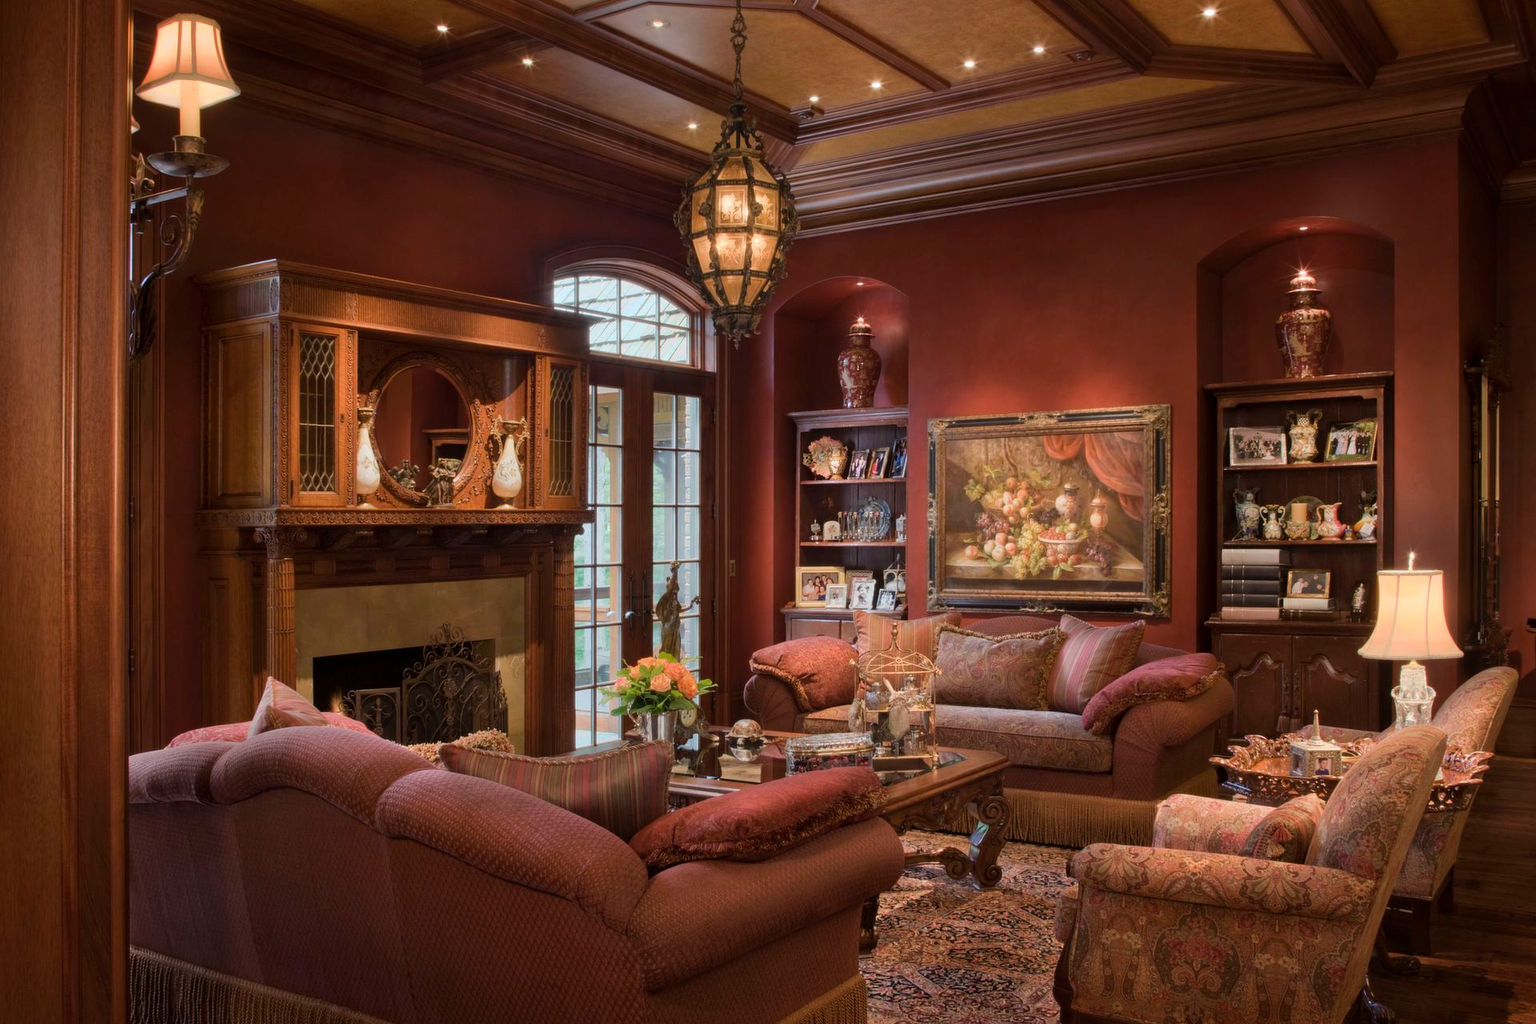 Mouta Group   Wix com Traditional living room in brown interior design jpg